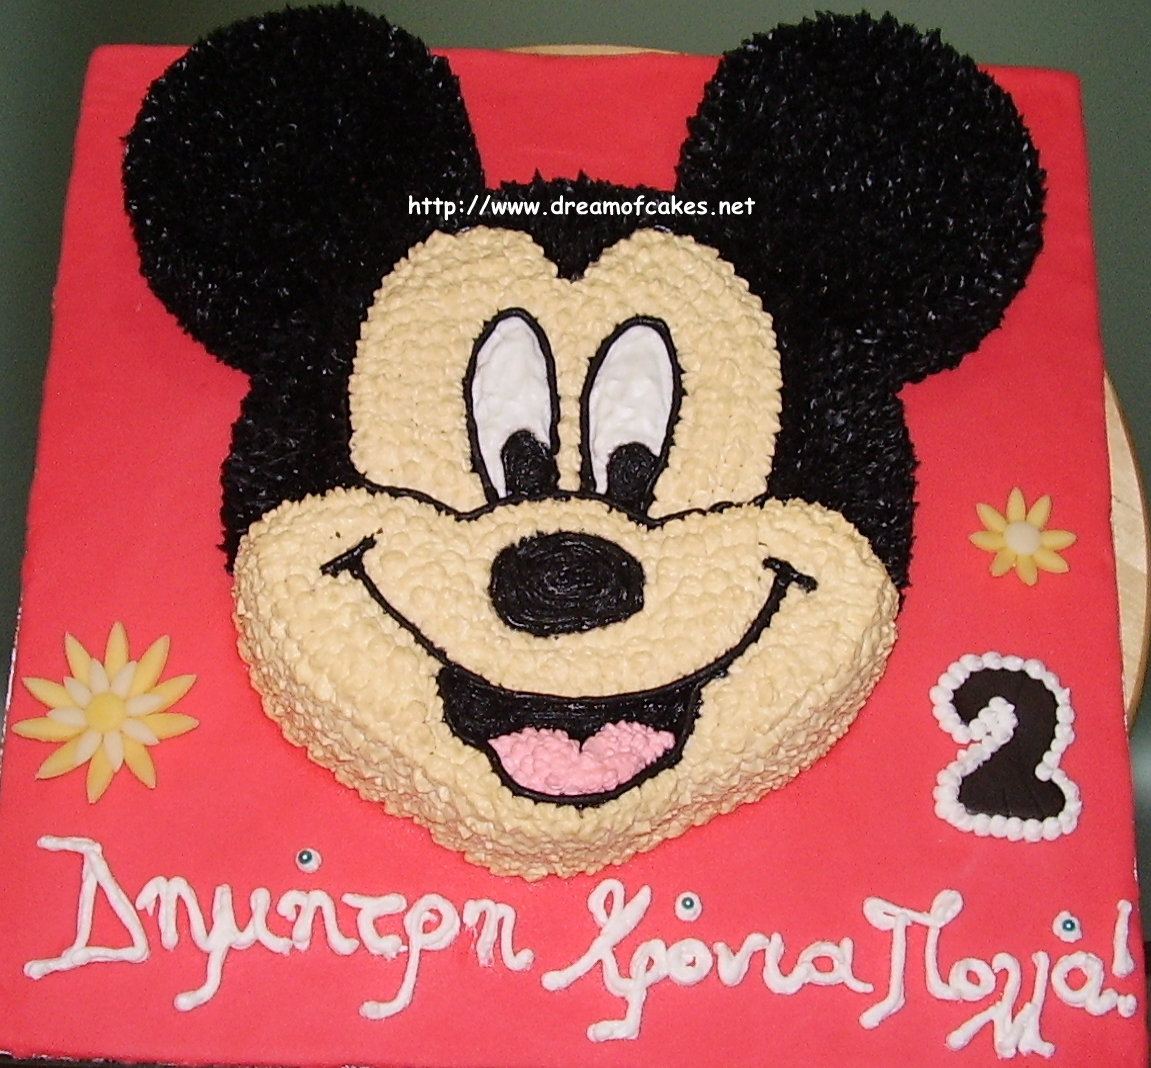 Mickey Mouse Cream Cake Images : Dream of Cakes: Mickey Mouse Birthday Cake